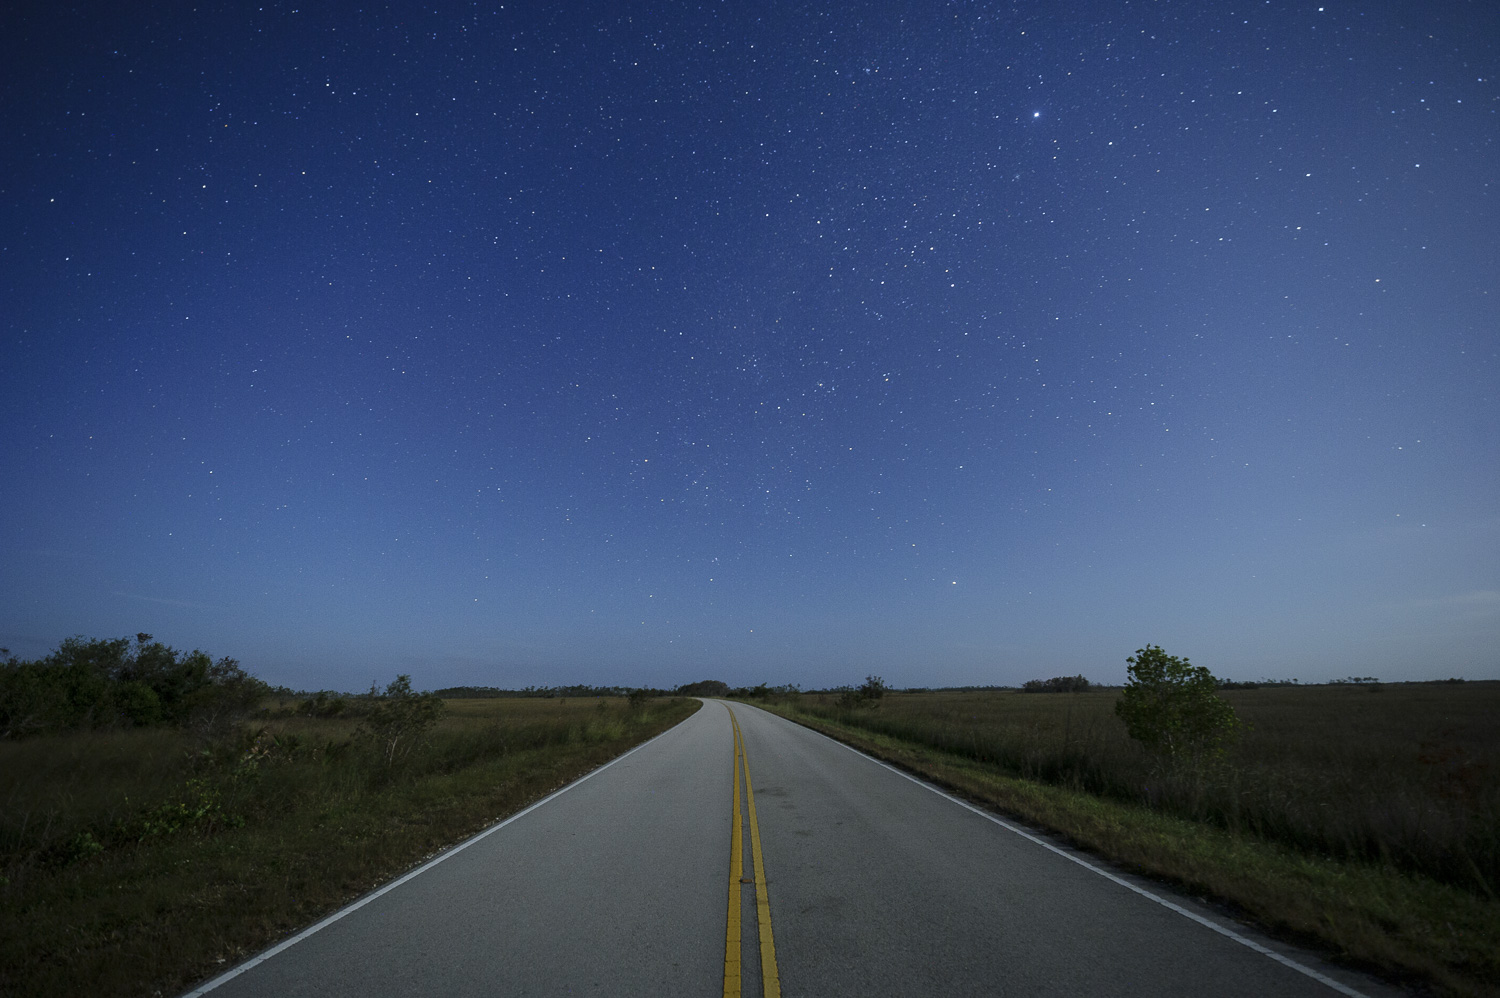 This past winter Chris Nicholson was able to drive in Everglades National Park without headlights—just the moonlight over the landscape was plenty to light the way. Photo by Chris Nicholson.